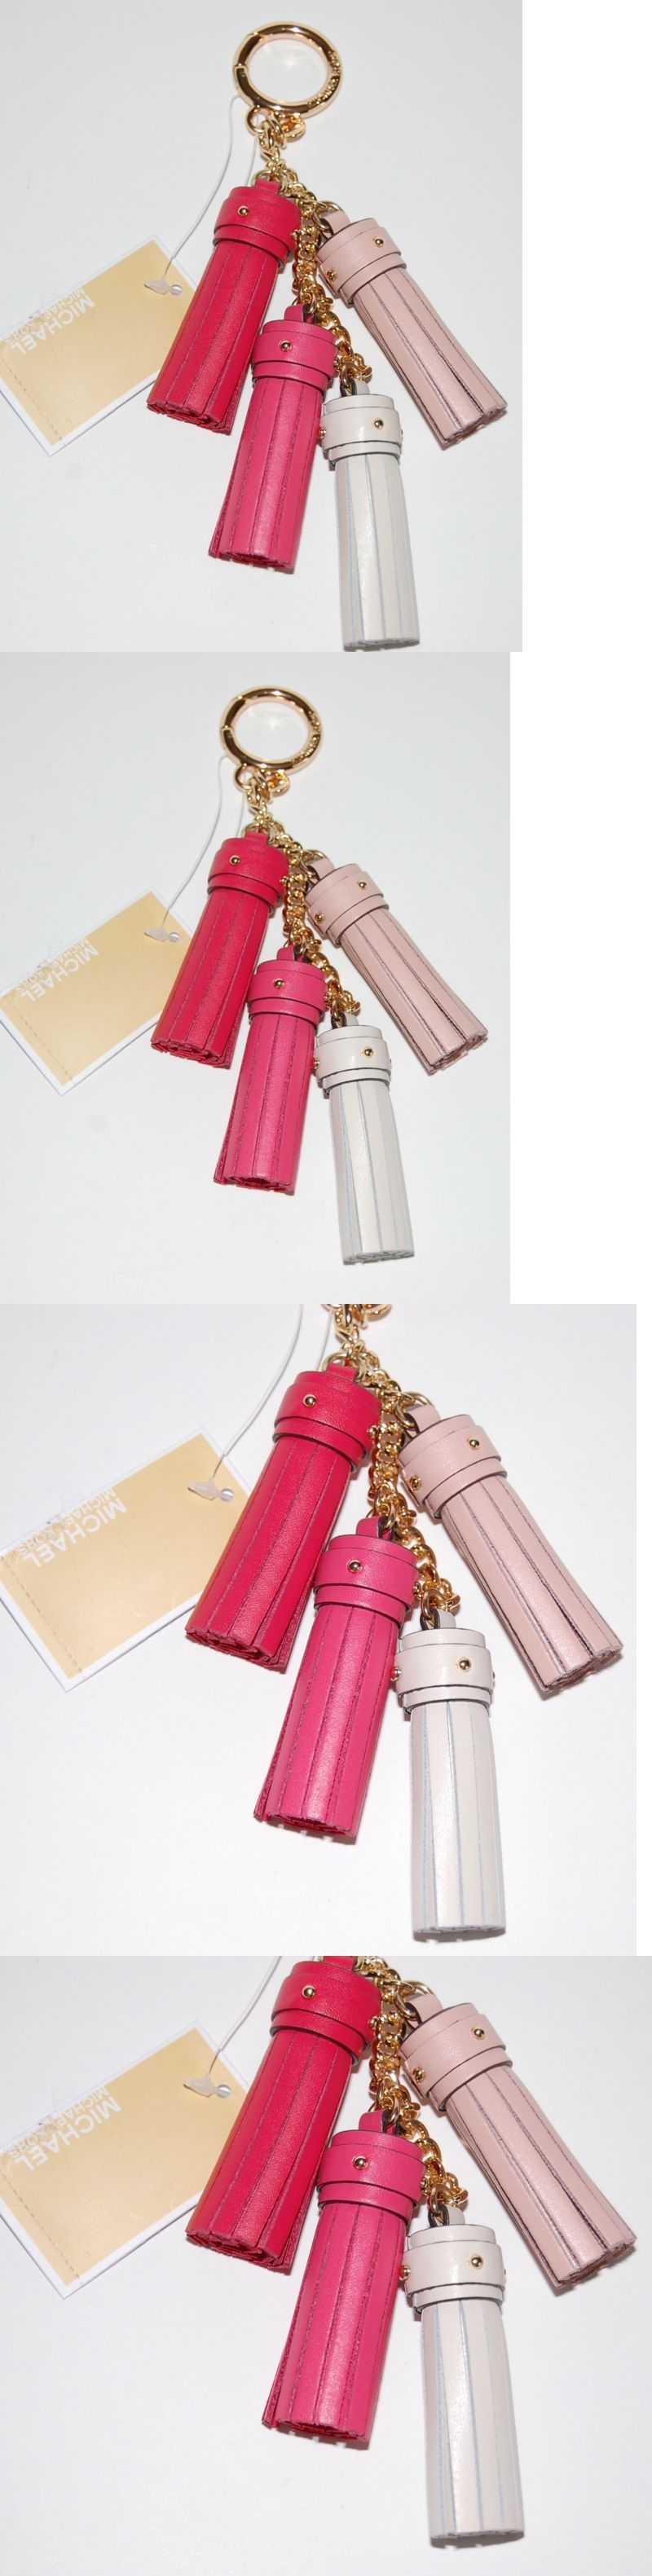 b8e7d9529a Key Chains Rings and Finders 45237  Nwt Michael Kors Pink Cascading Charms  Tassel Leather Key